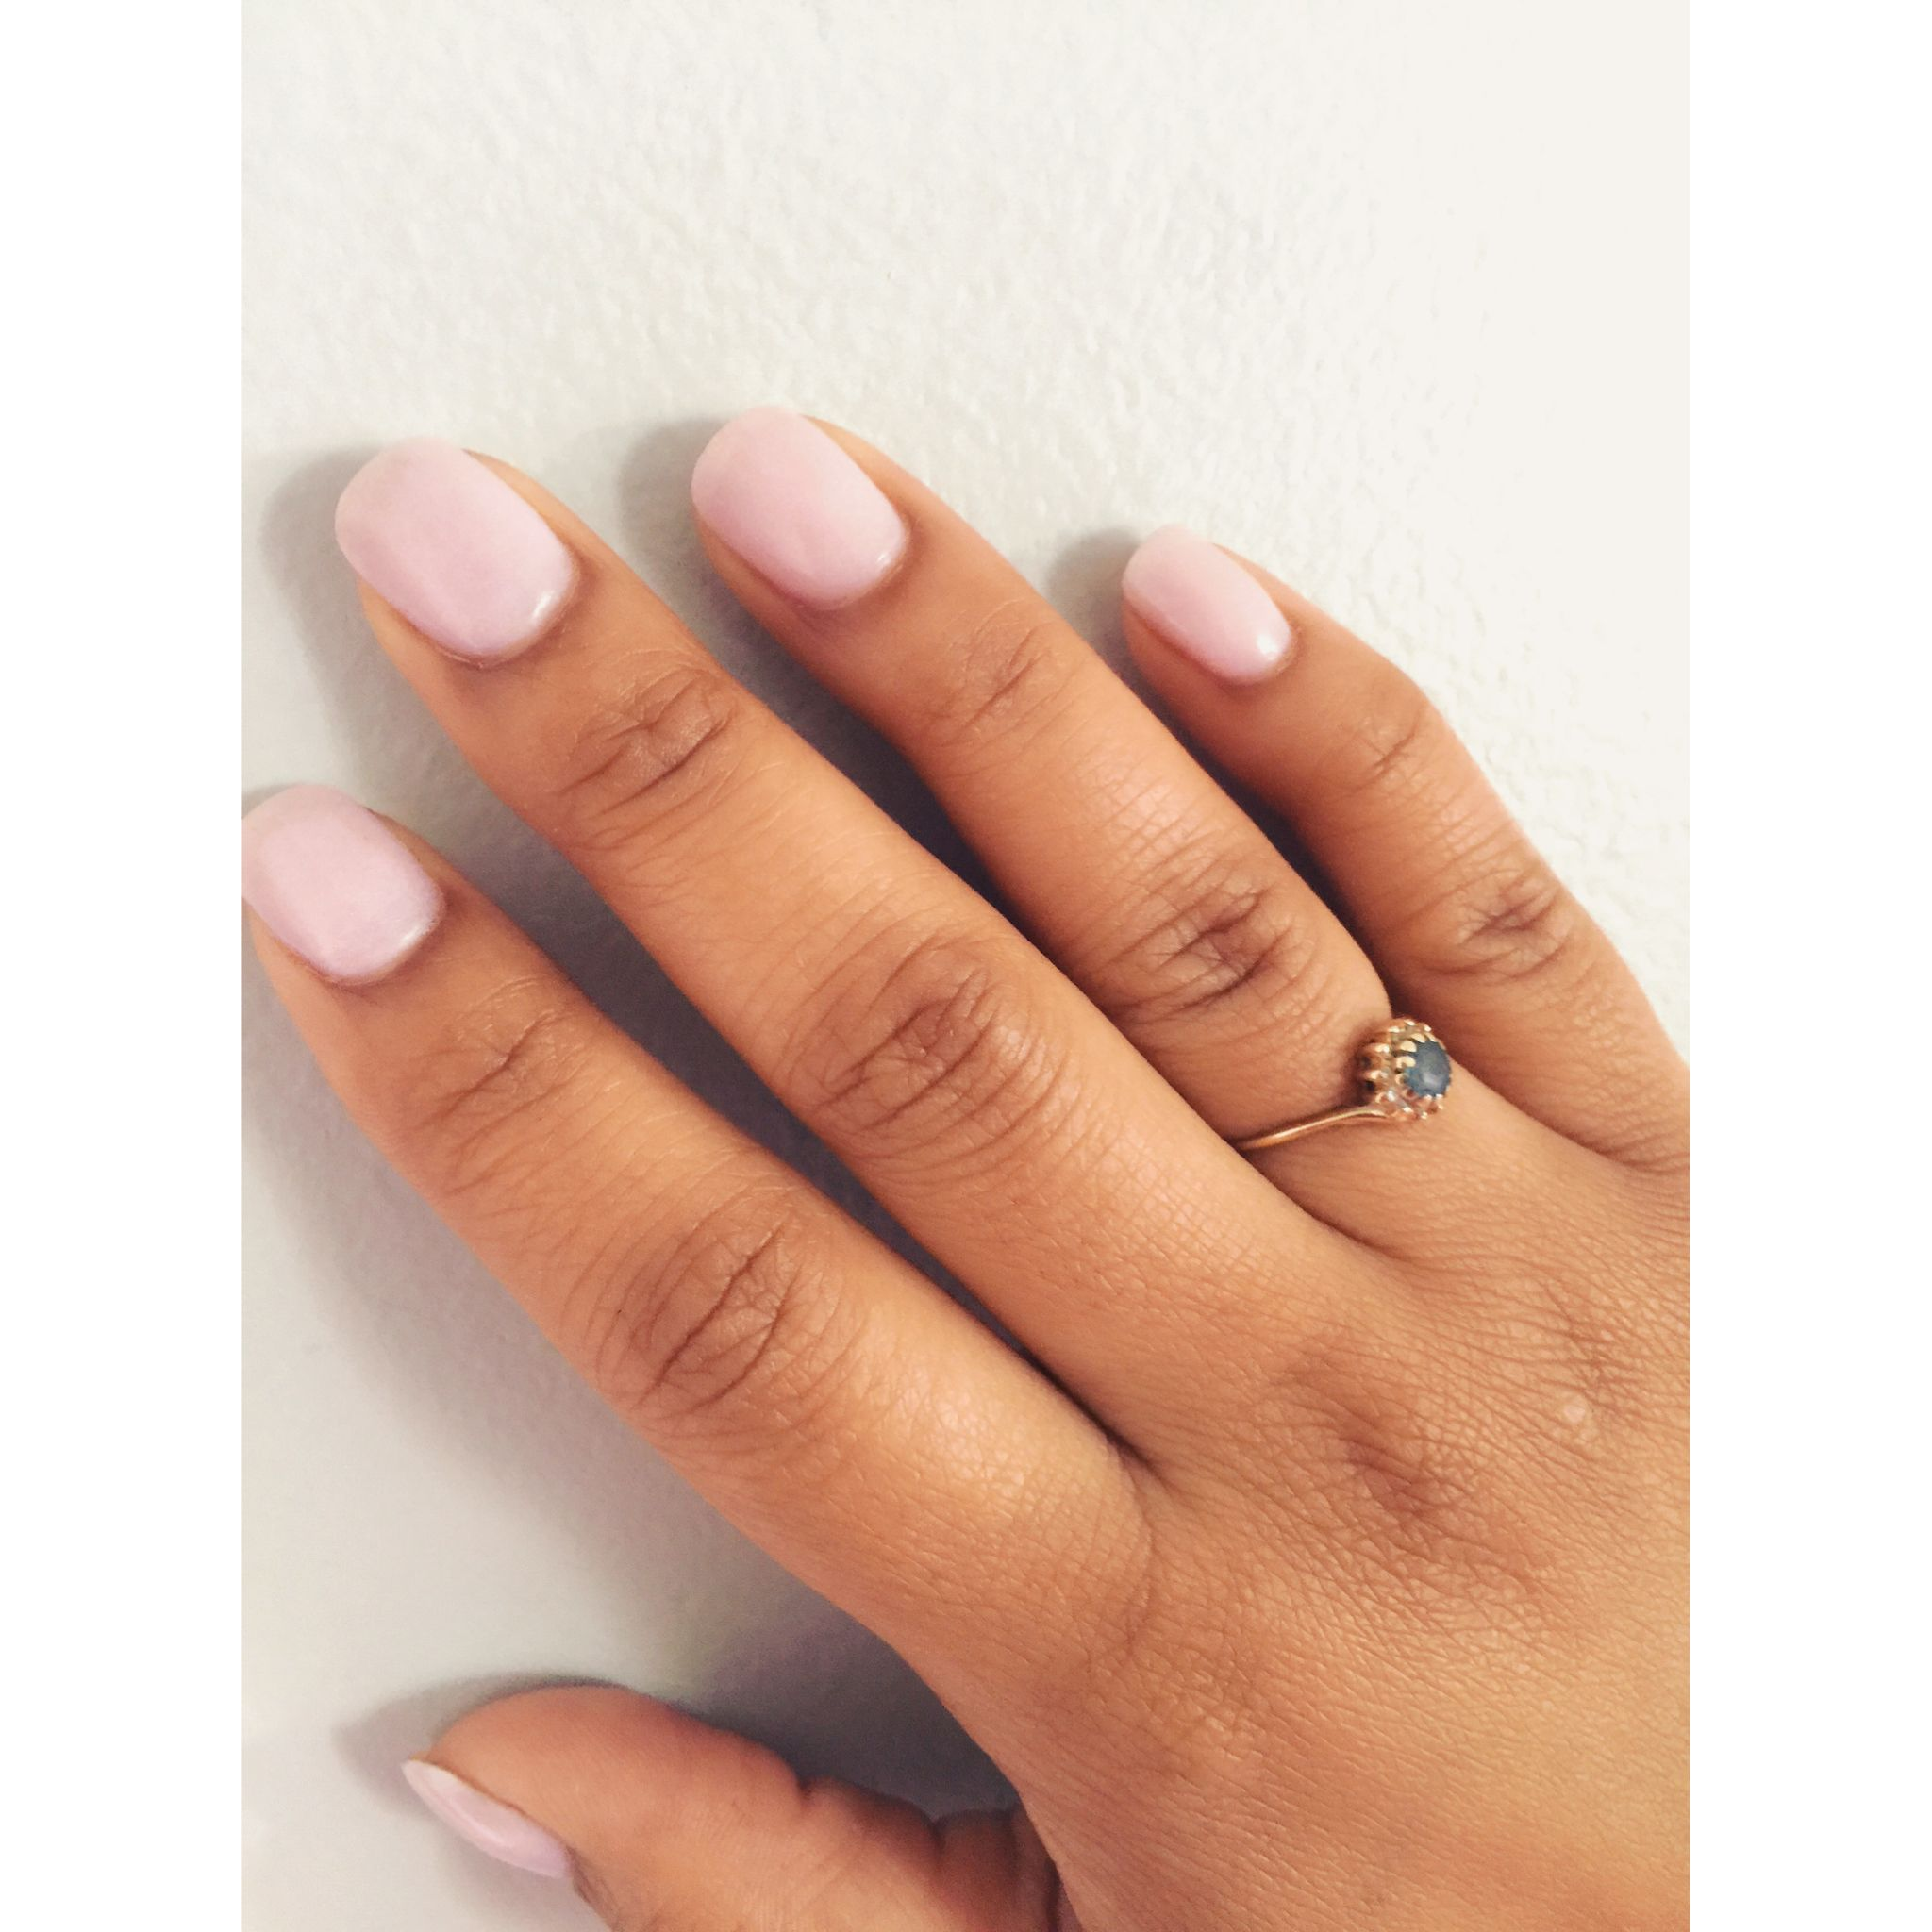 Sns 56 Barely There Pink Neutral Colors Spring Nail Colors